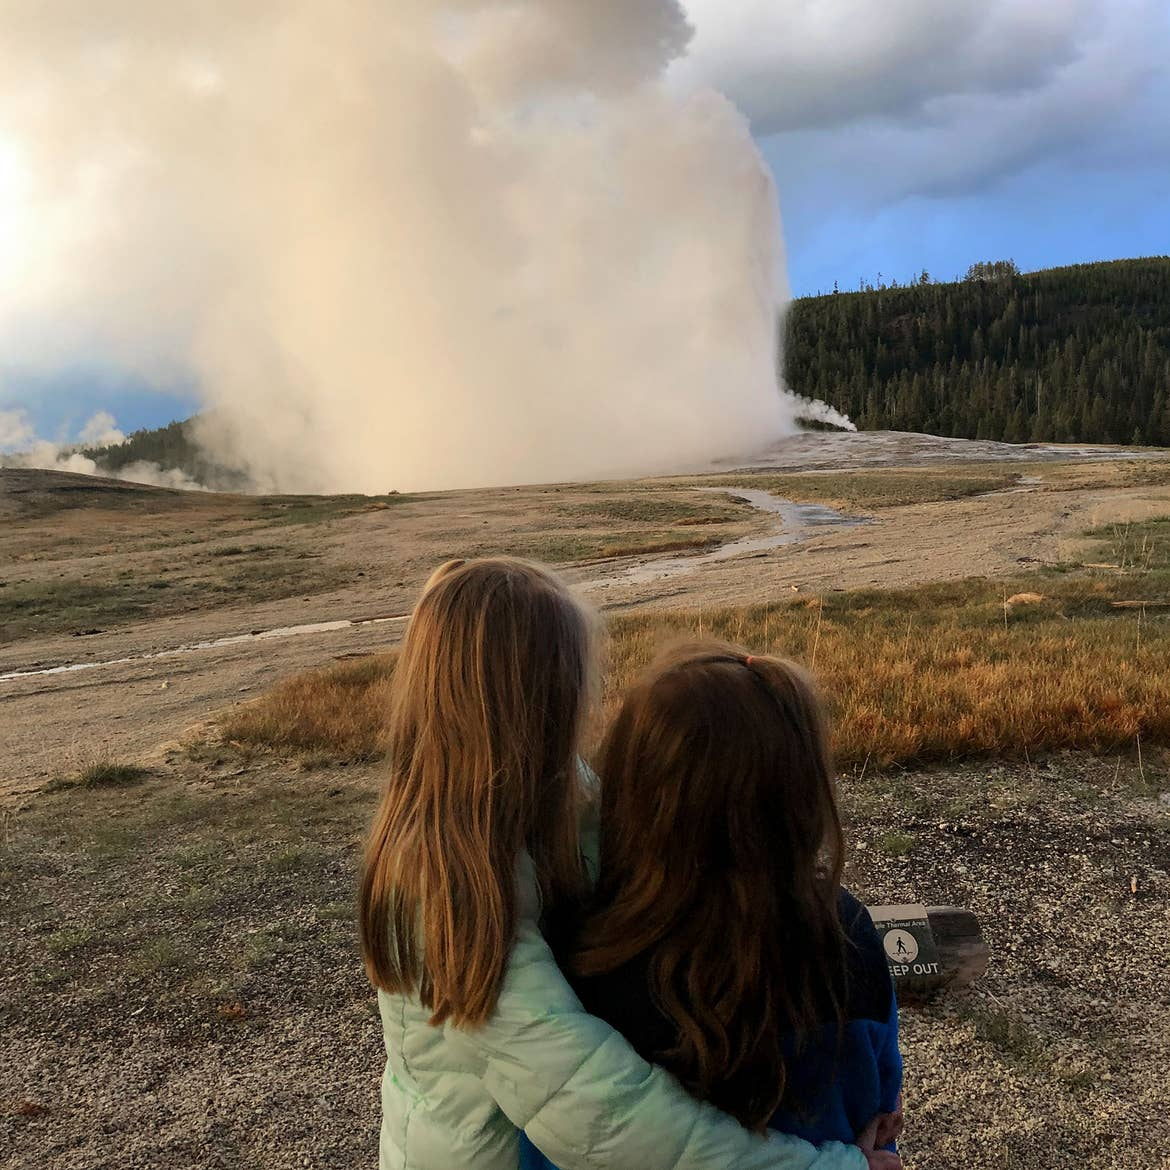 Author, Chris Johnstons' daughters, Kyndall (left), and Kyler (right) face out to watch Old Faithful at dusk while wrapping one arm around each other.